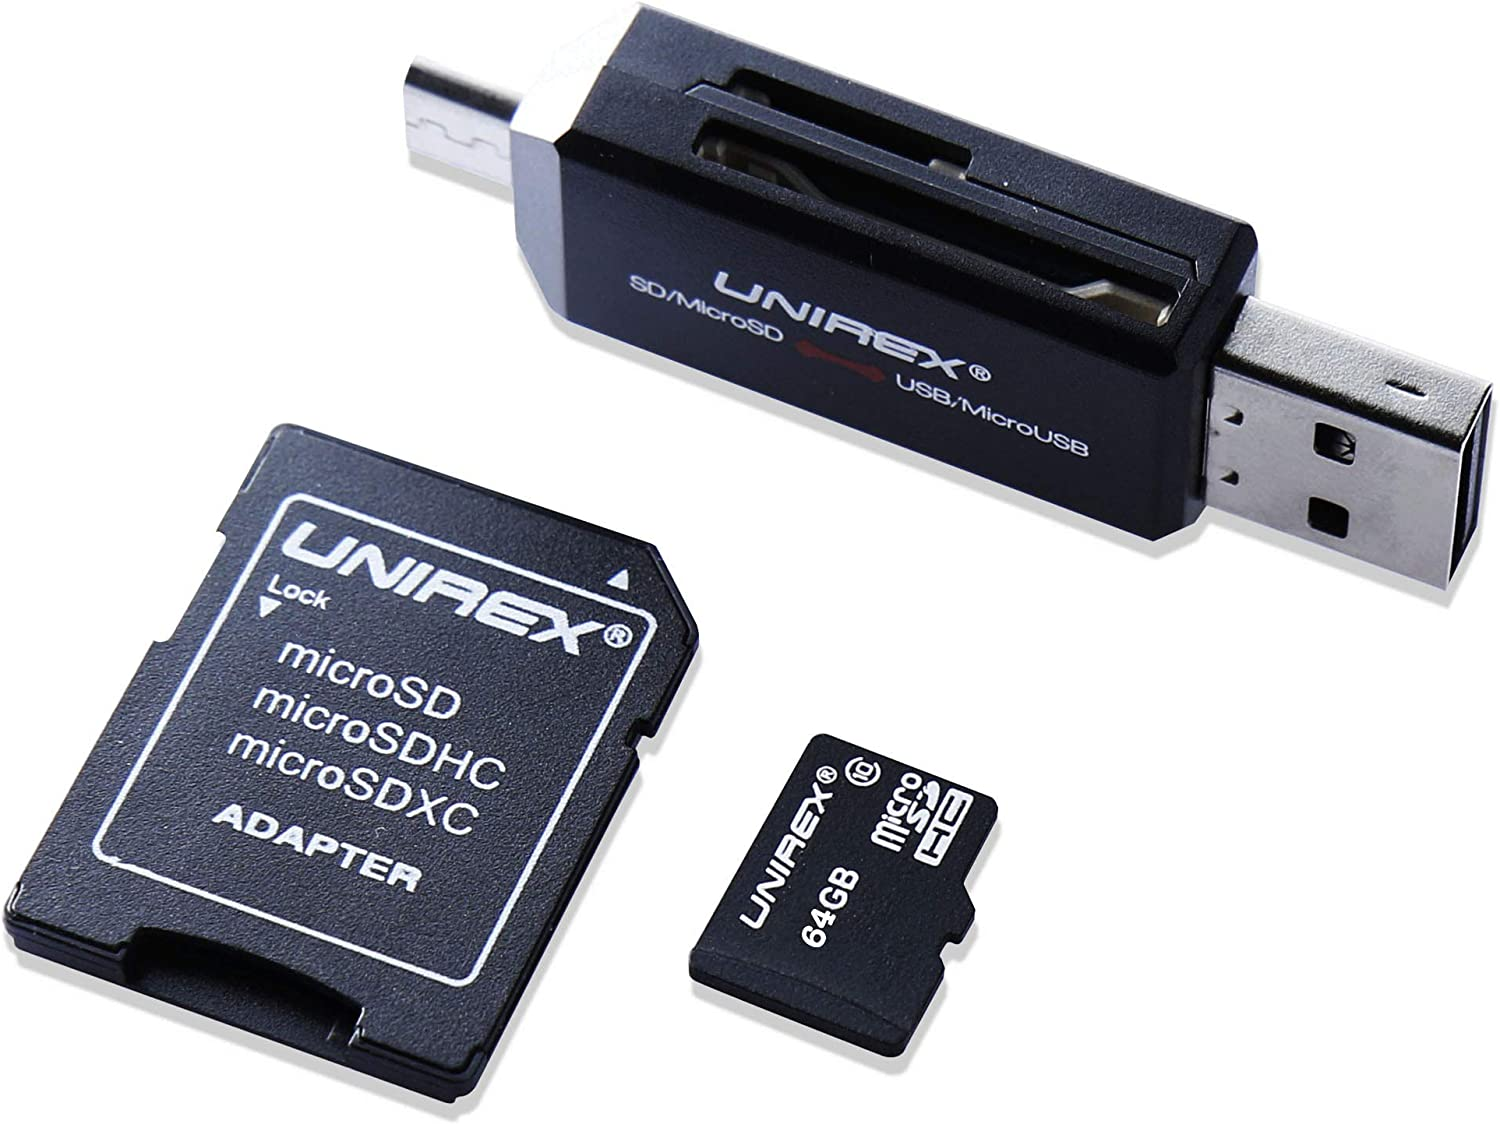 64GB All in One Adapter Kit - Micro SD Memory Card, SD Card Adapter and Double Sided USB and Micro USB Reader - Compatible with Tablet, Computer, Laptop, Camera, Switch and Cell Phone